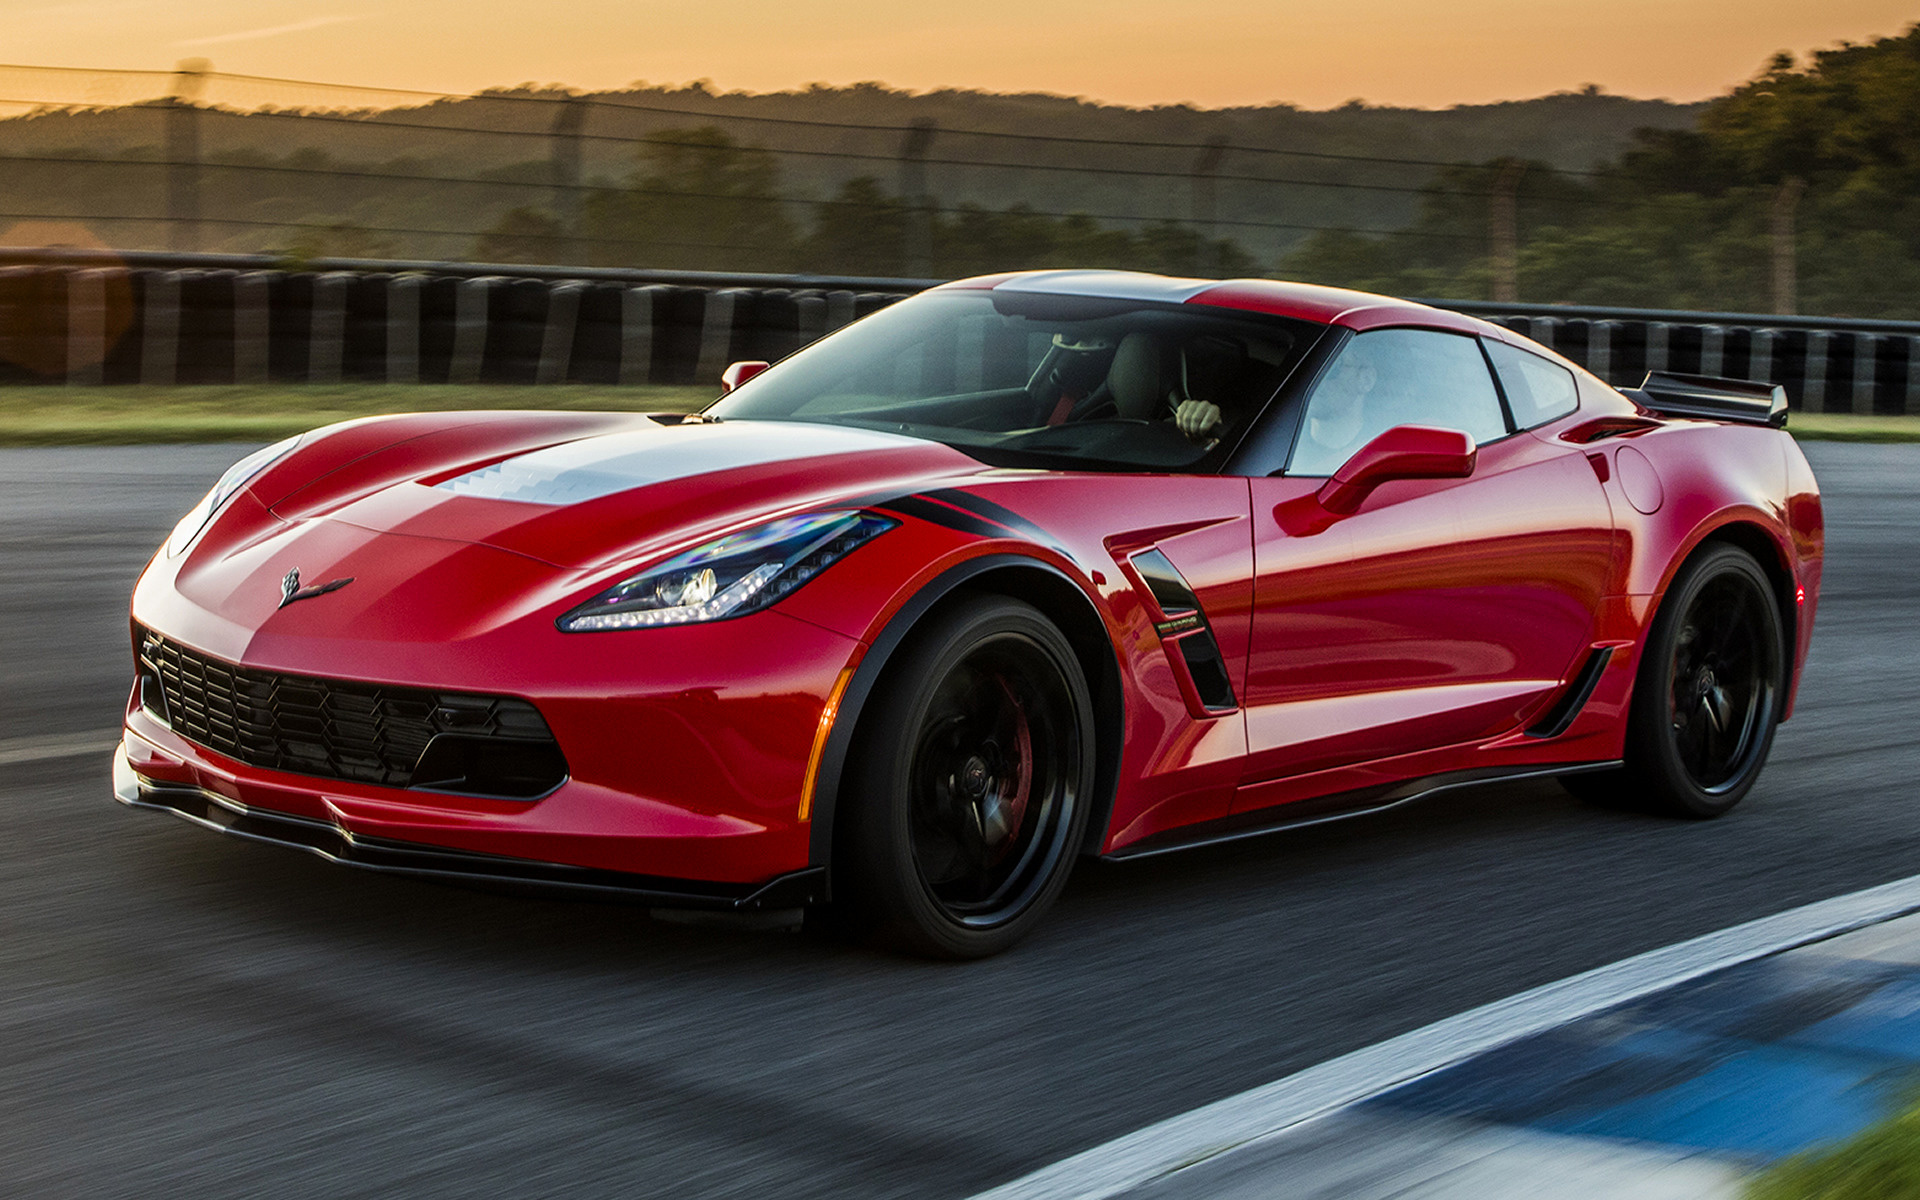 2017 Chevrolet Corvette Grand Sport - Wallpapers and HD ...